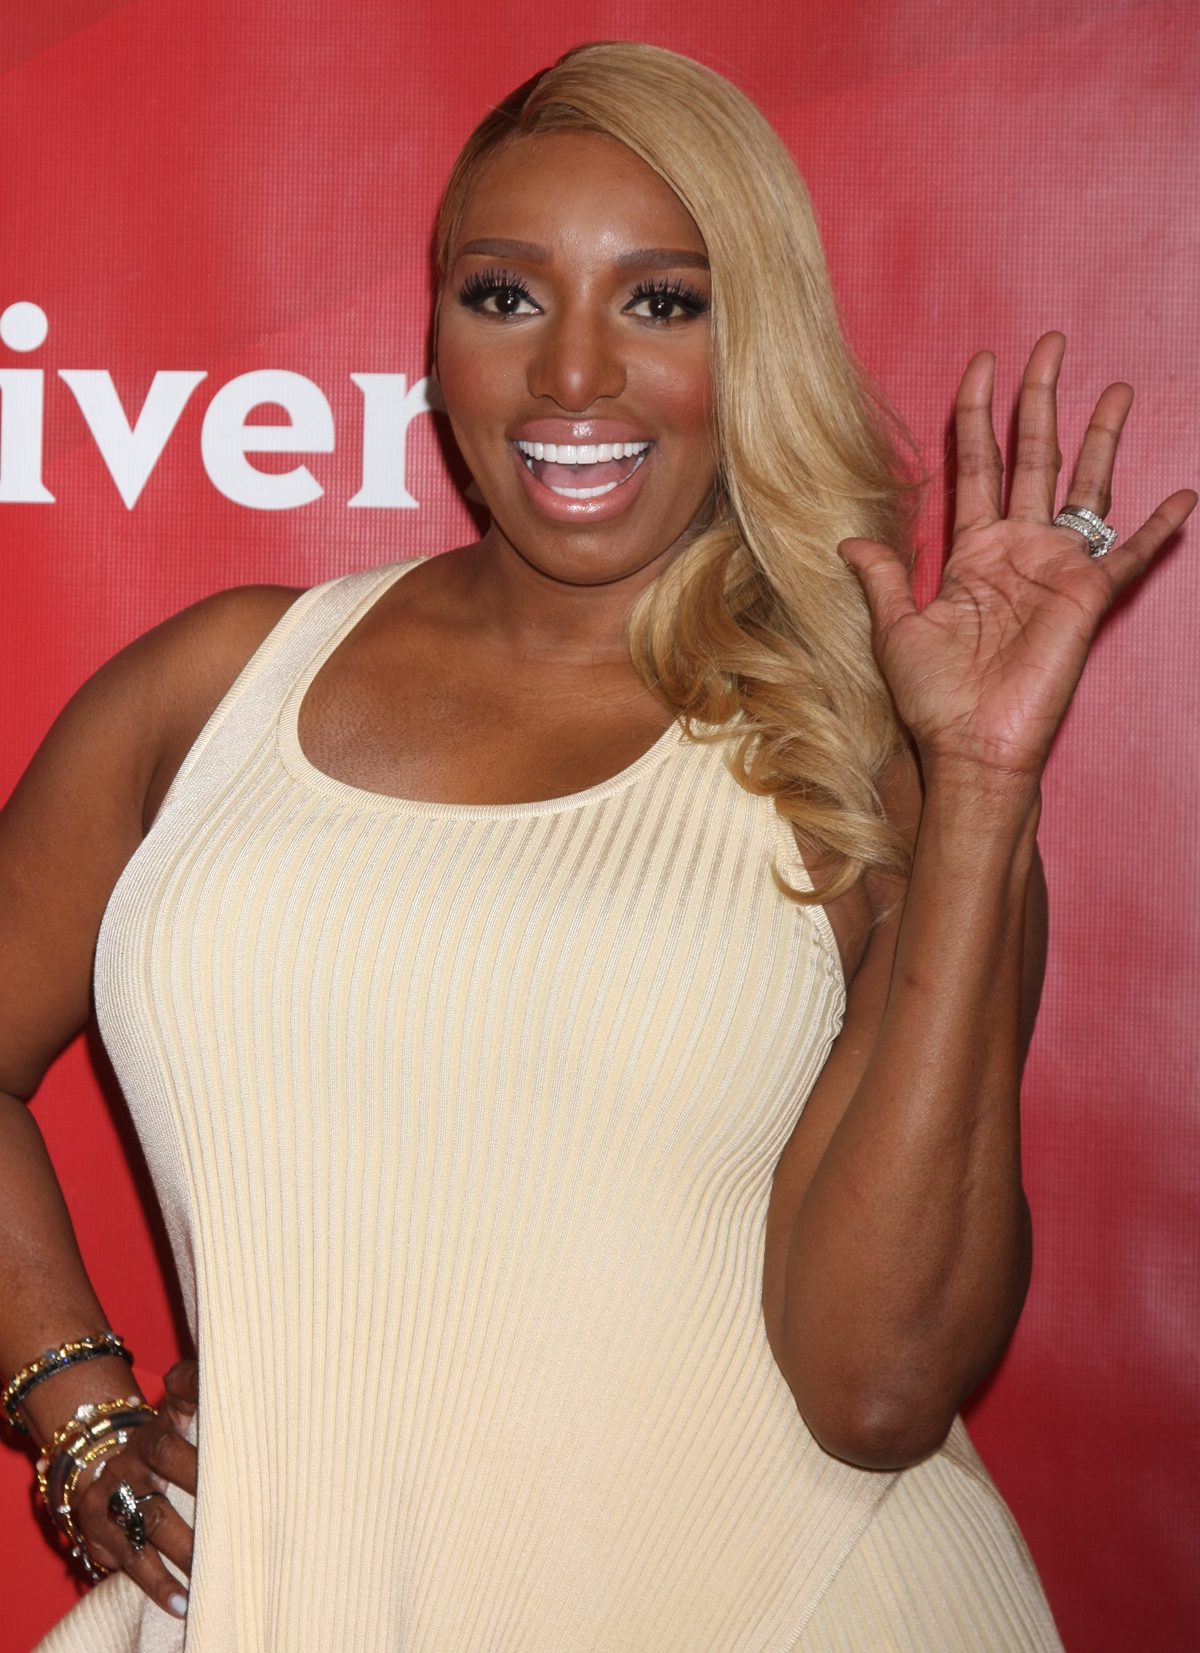 EXCLUSIVE: Insider Confirms NeNe Leakes Dropped By Agent, Manager, & Lawyer; She's 'Impossible To Work With'